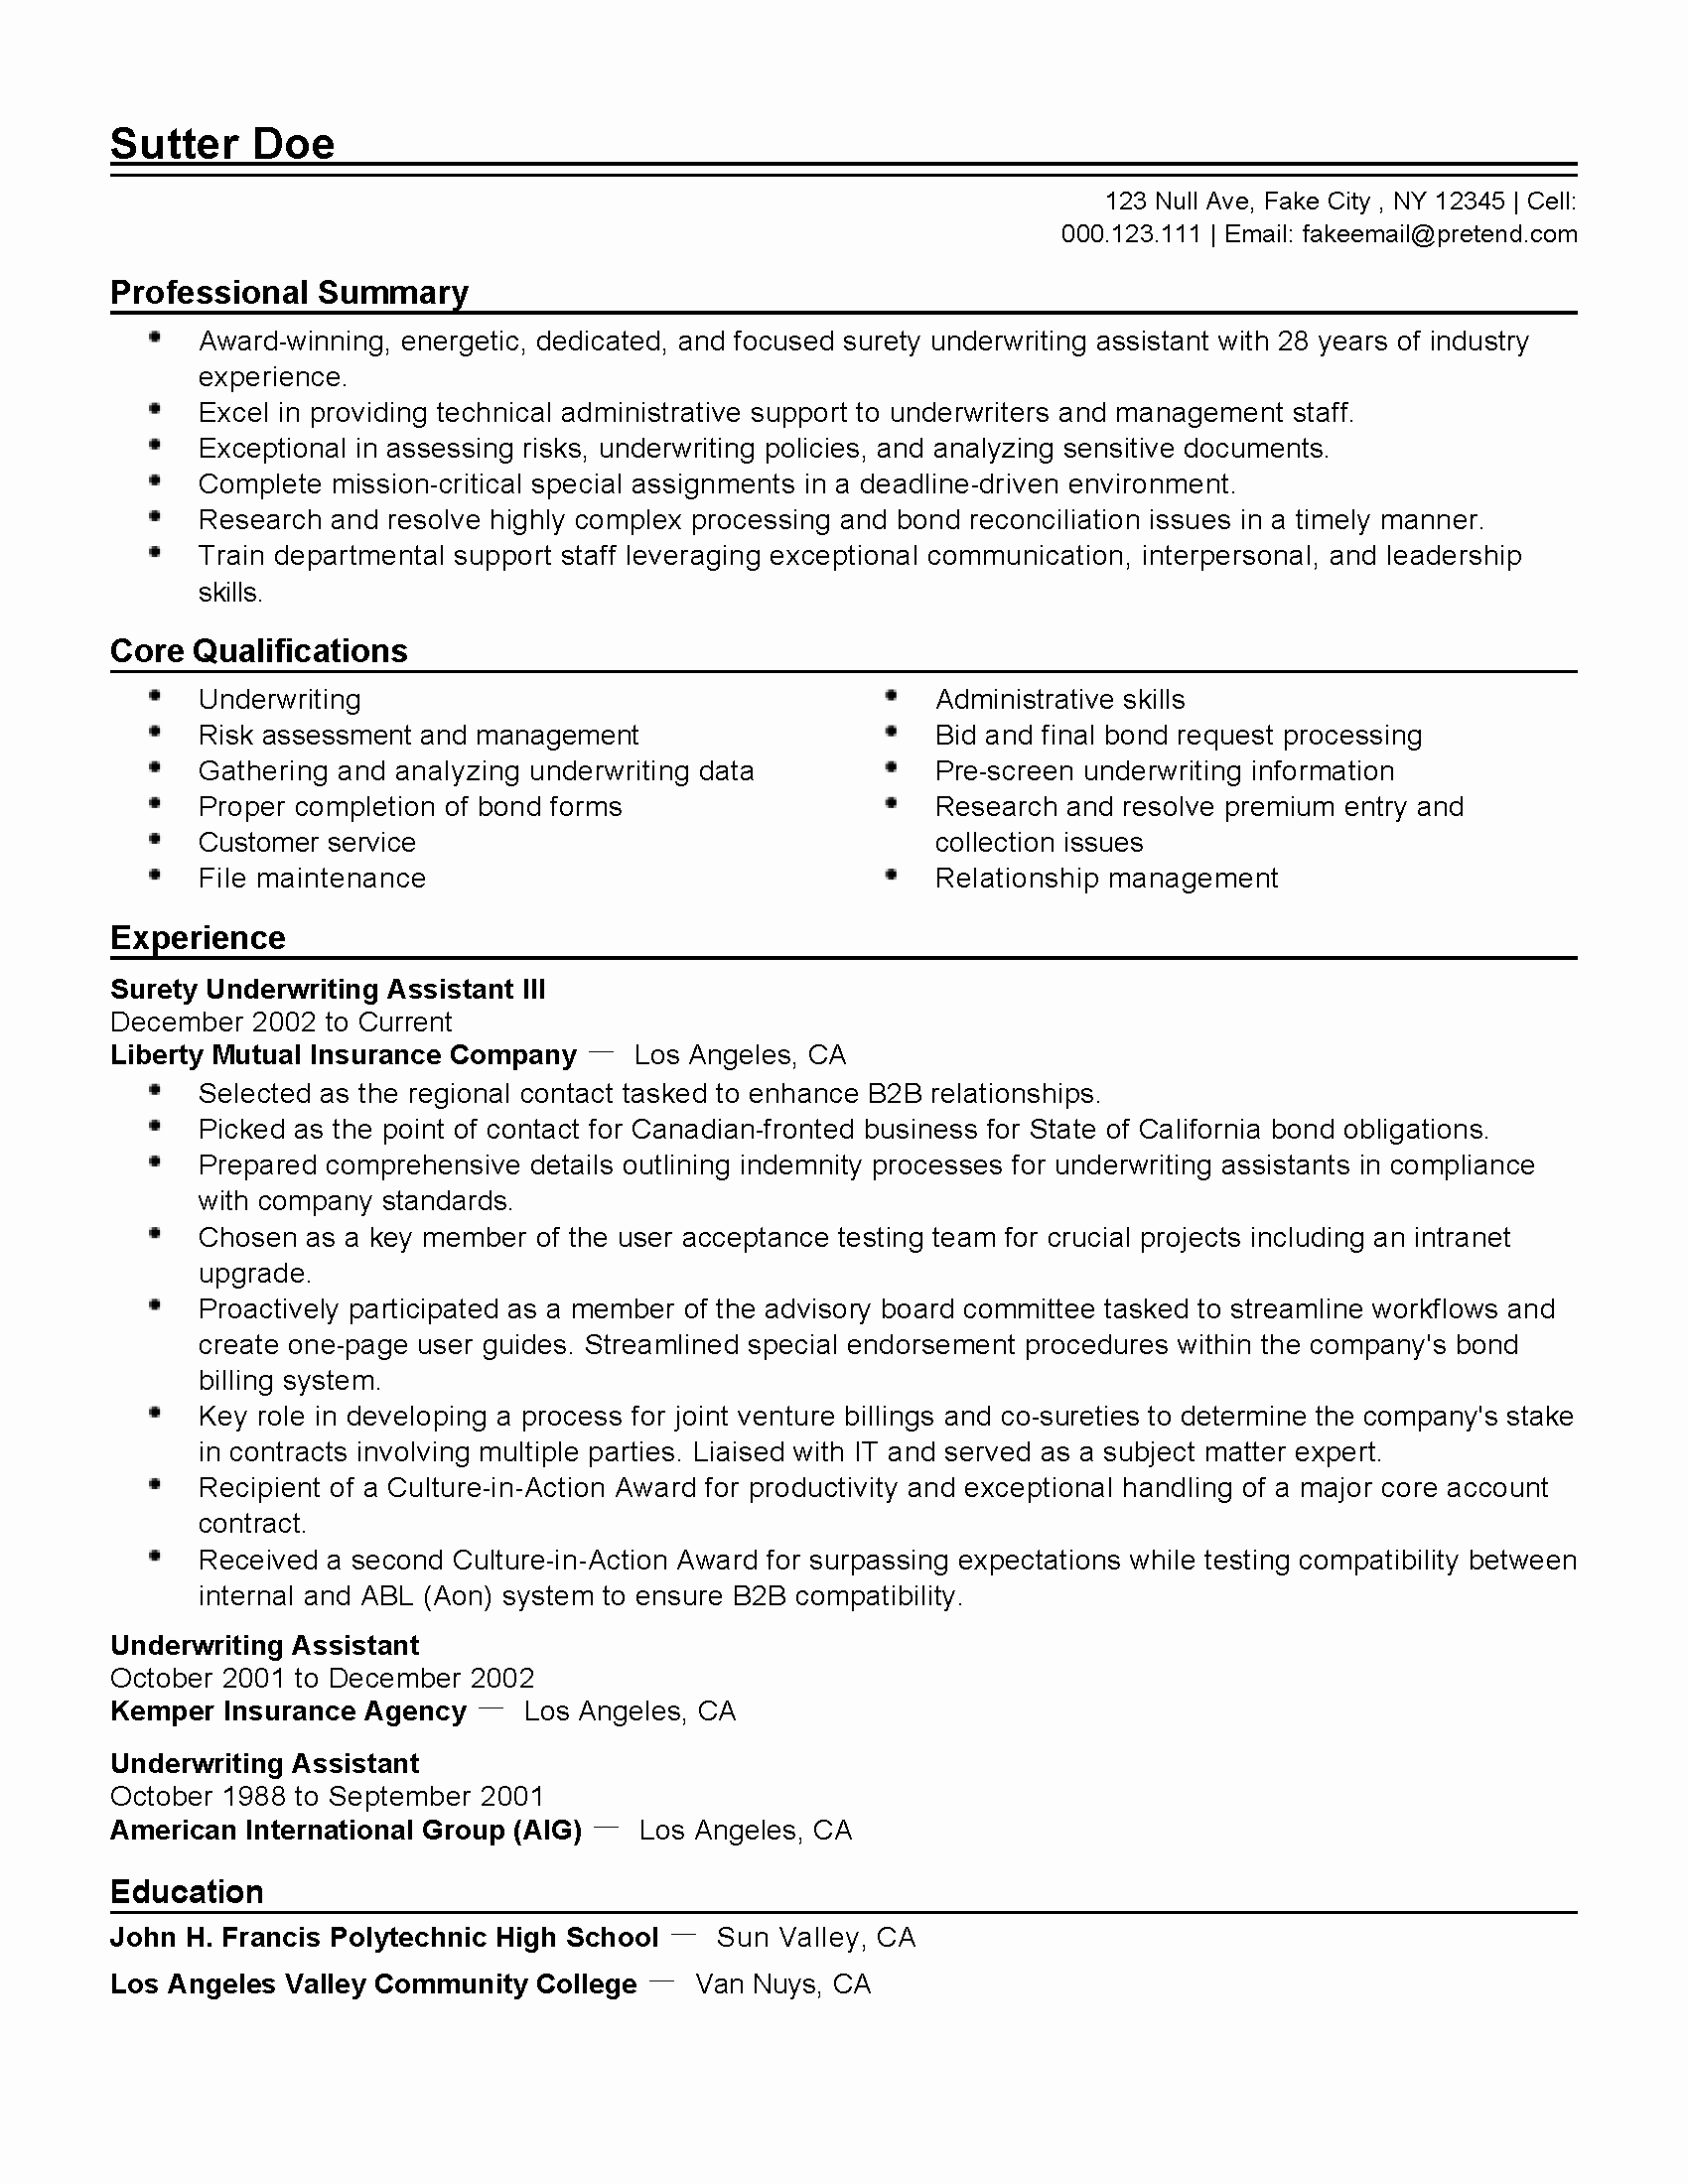 Professional Surety Underwriting assistant Iii Templates